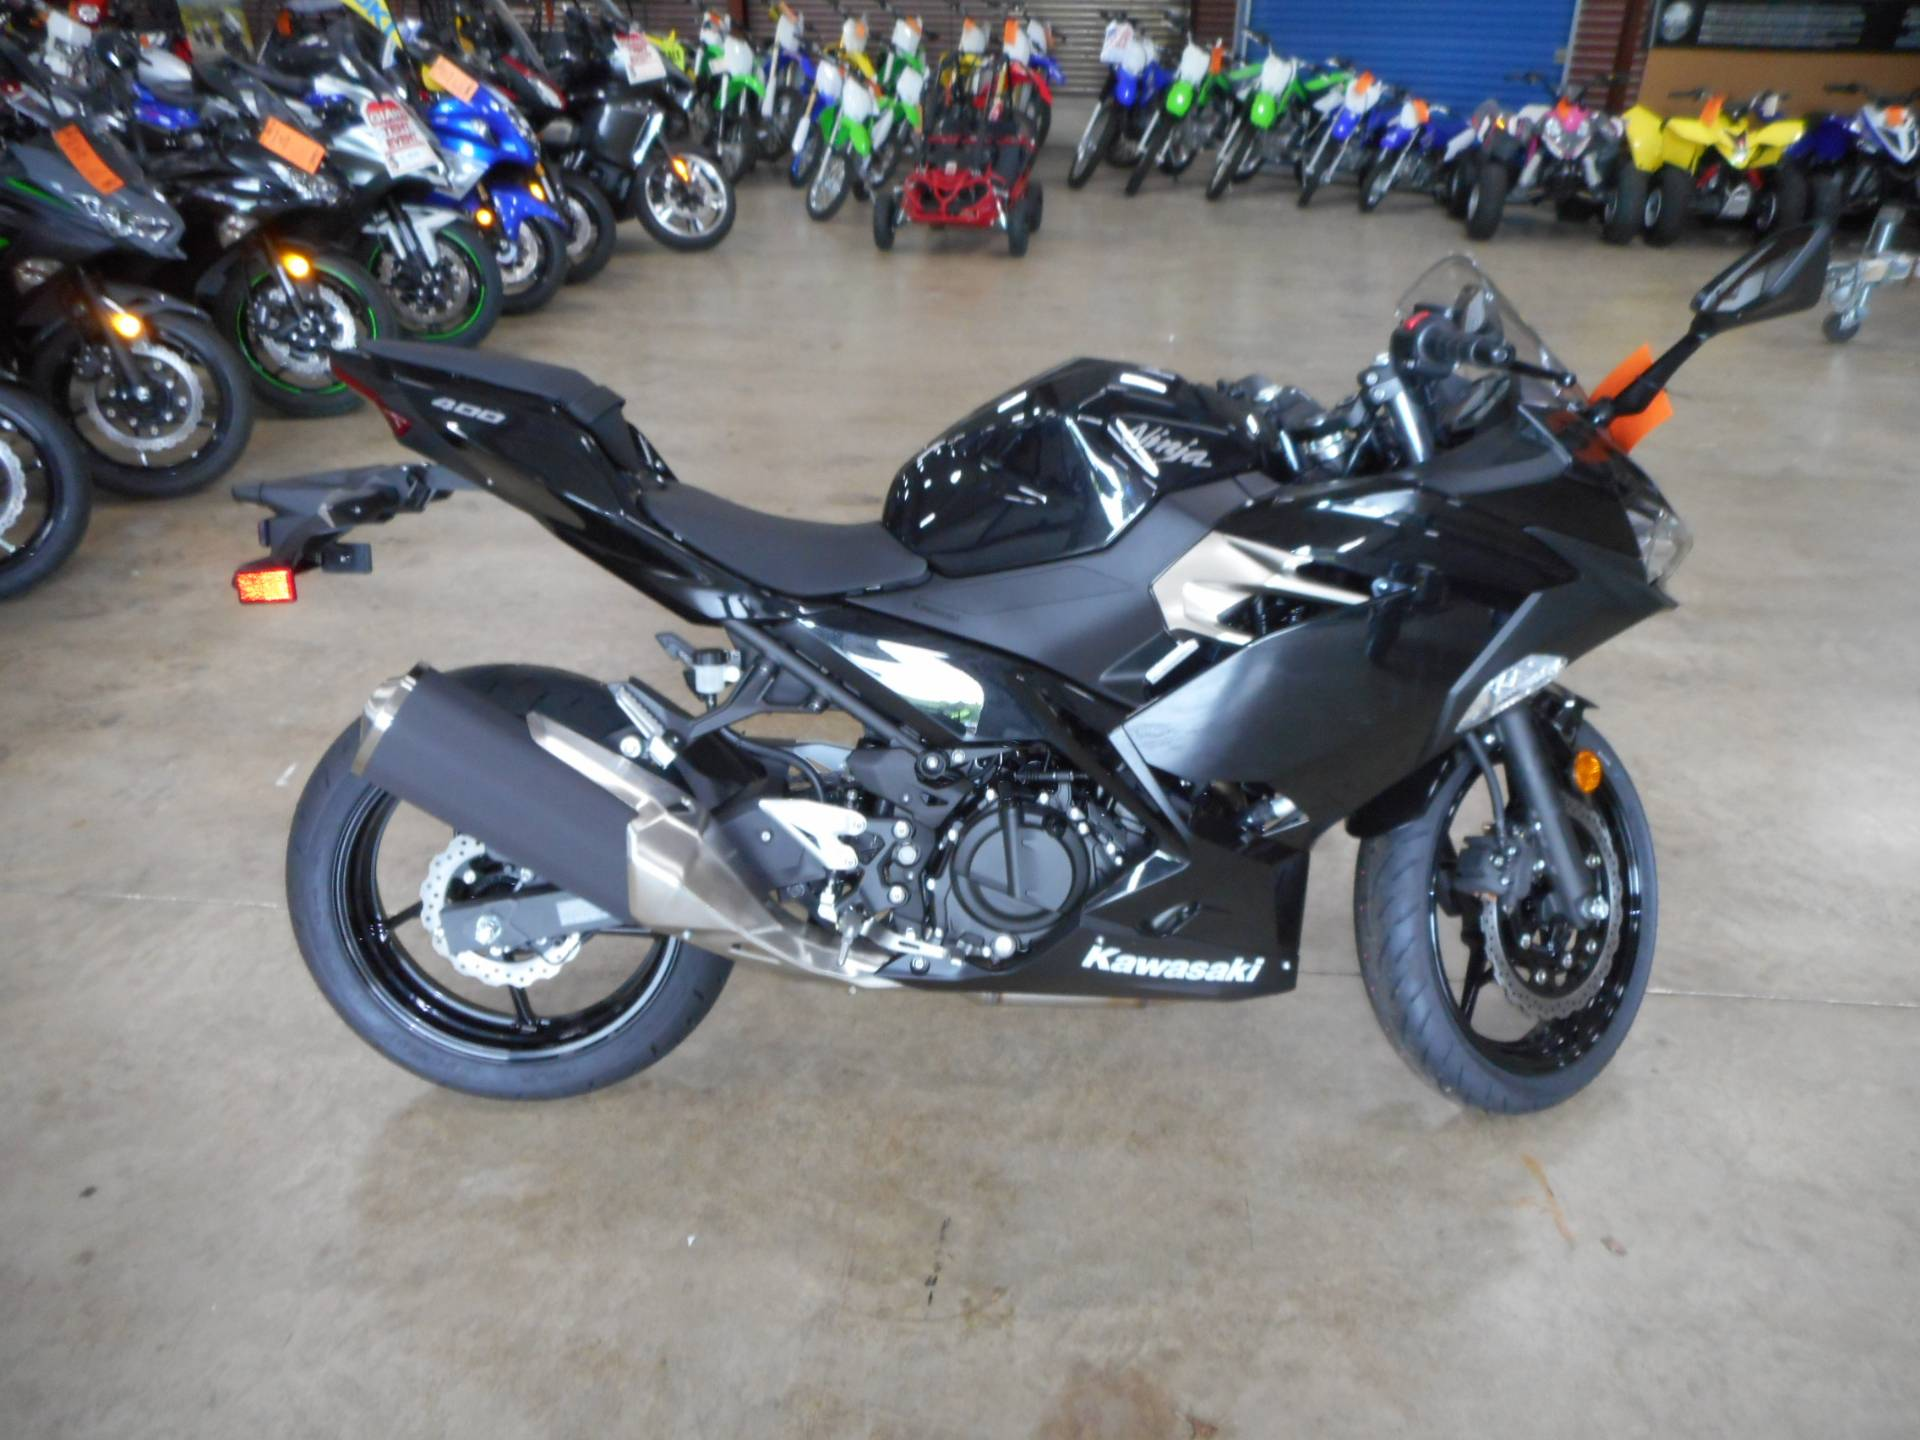 2019 Kawasaki Ninja 400 in Belvidere, Illinois - Photo 1